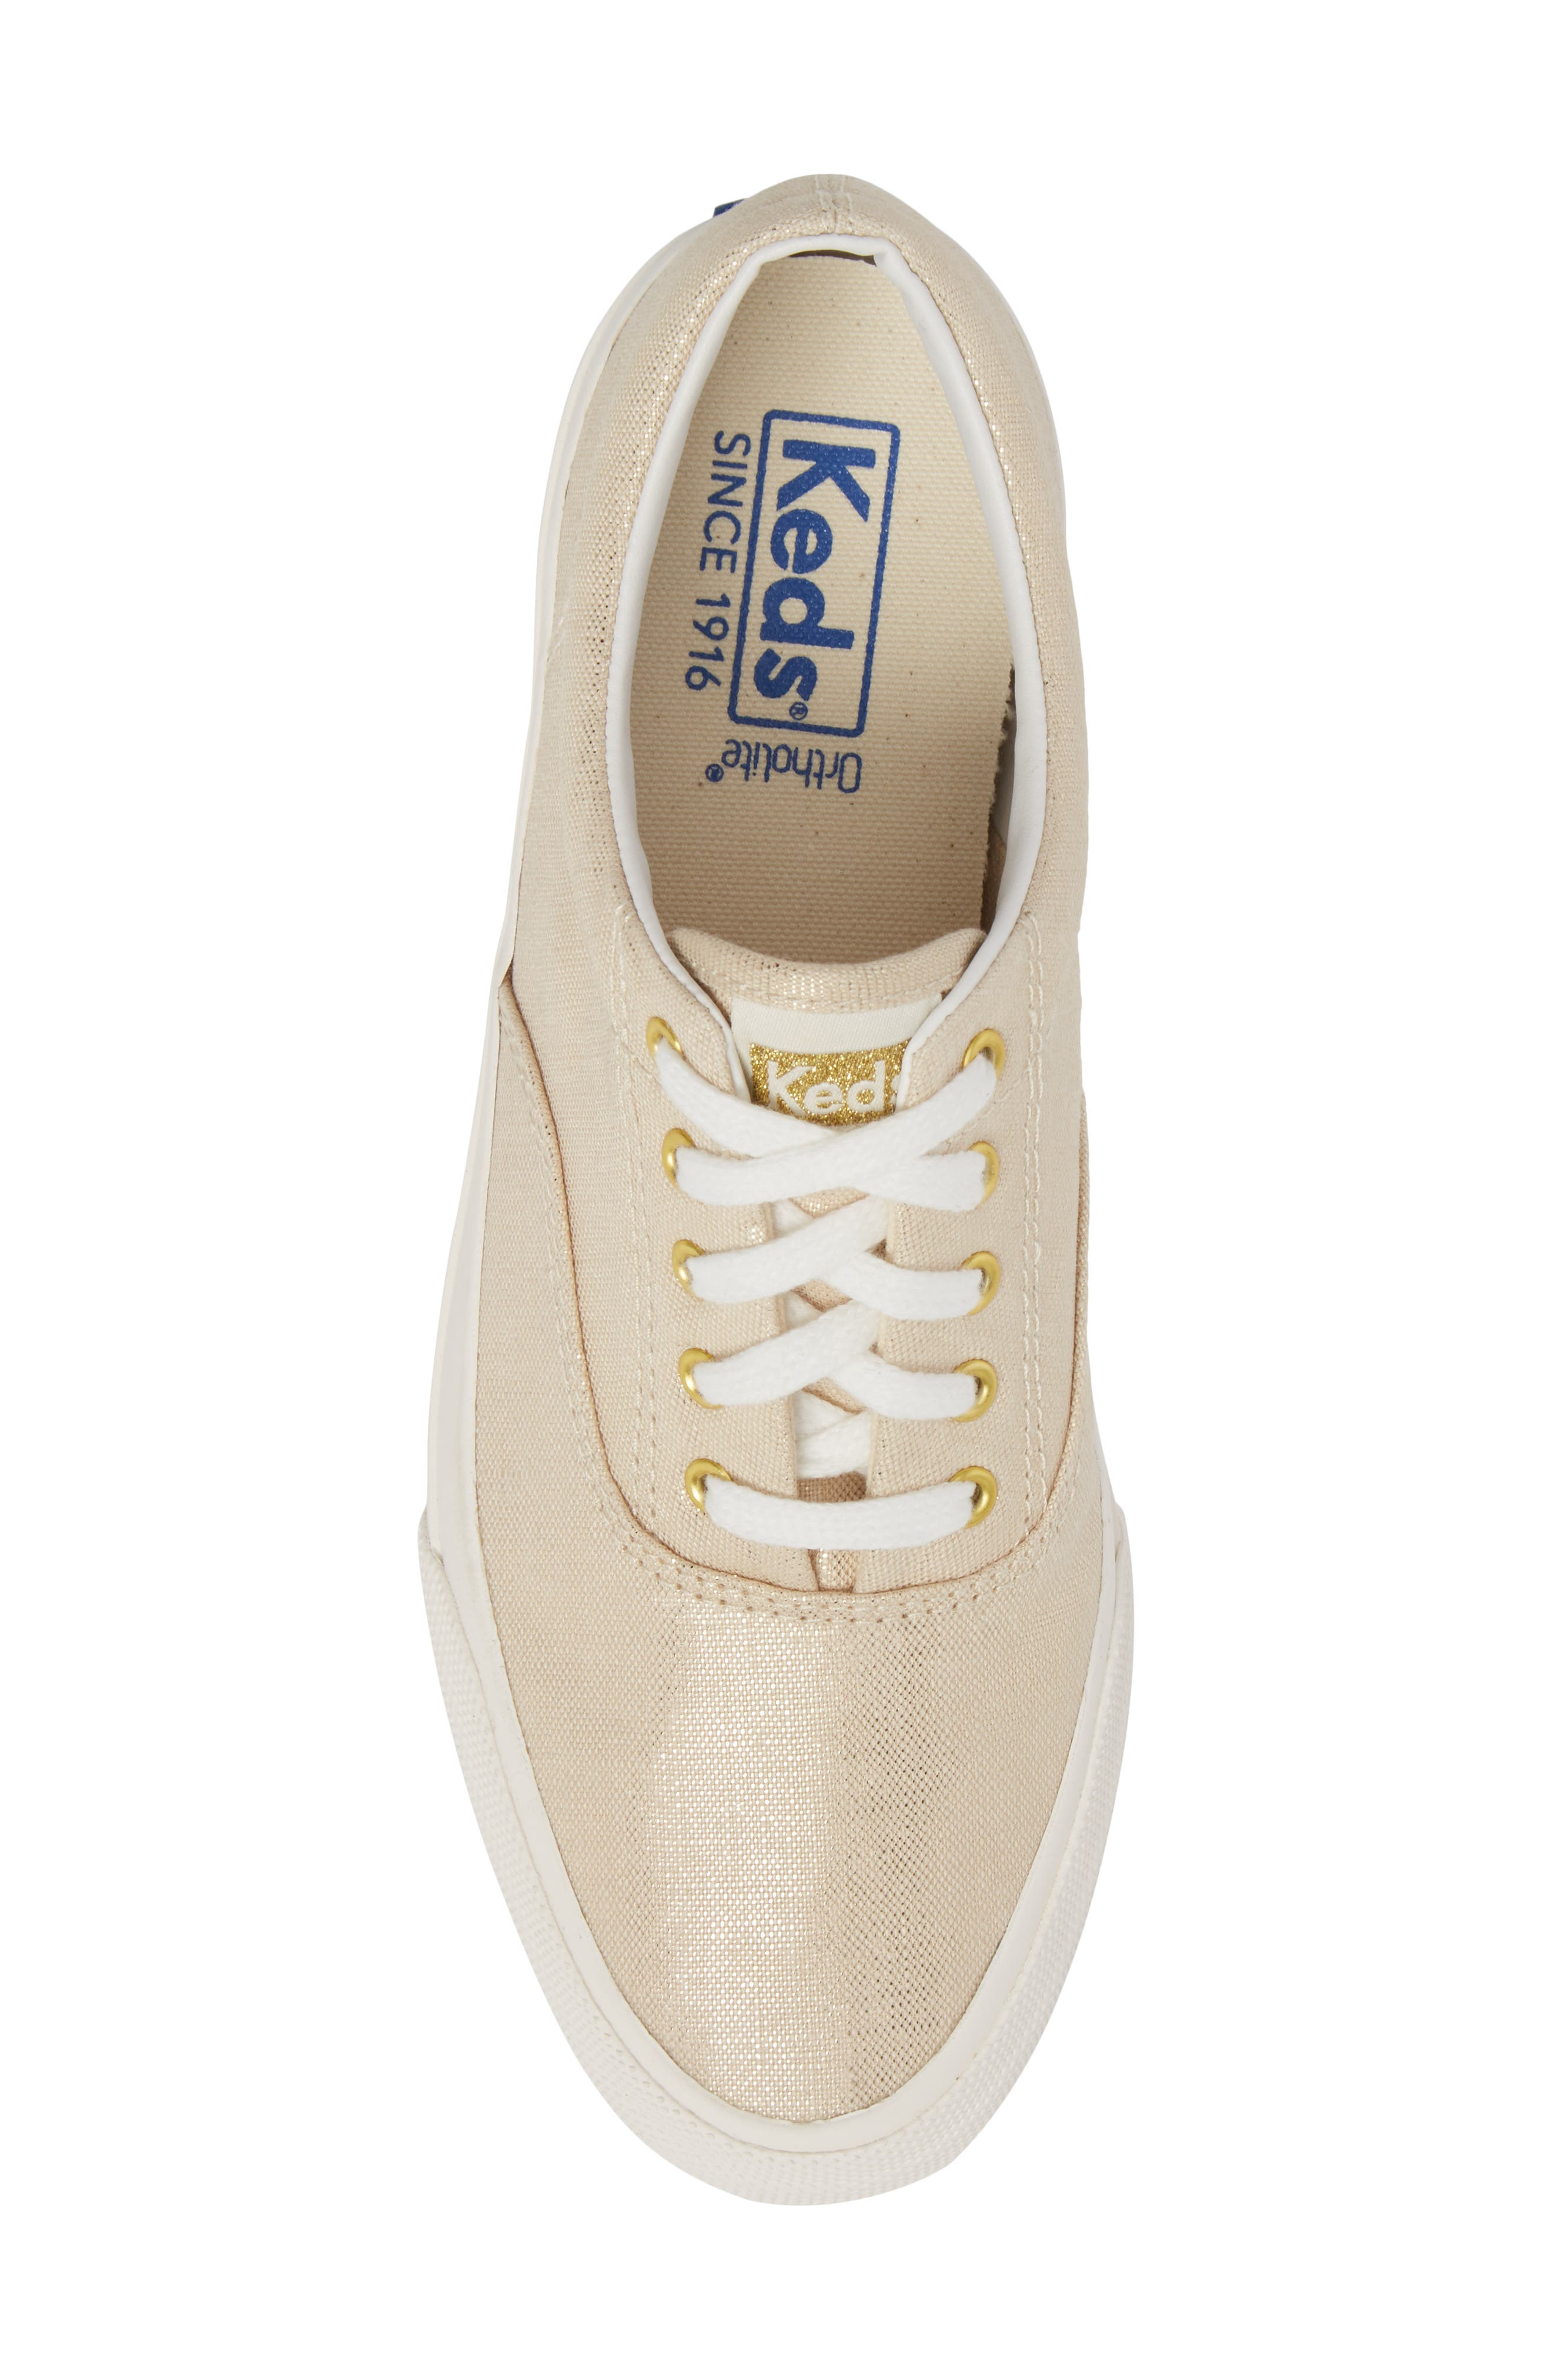 Anchor Metallic Linen Sneaker,                             Alternate thumbnail 5, color,                             710